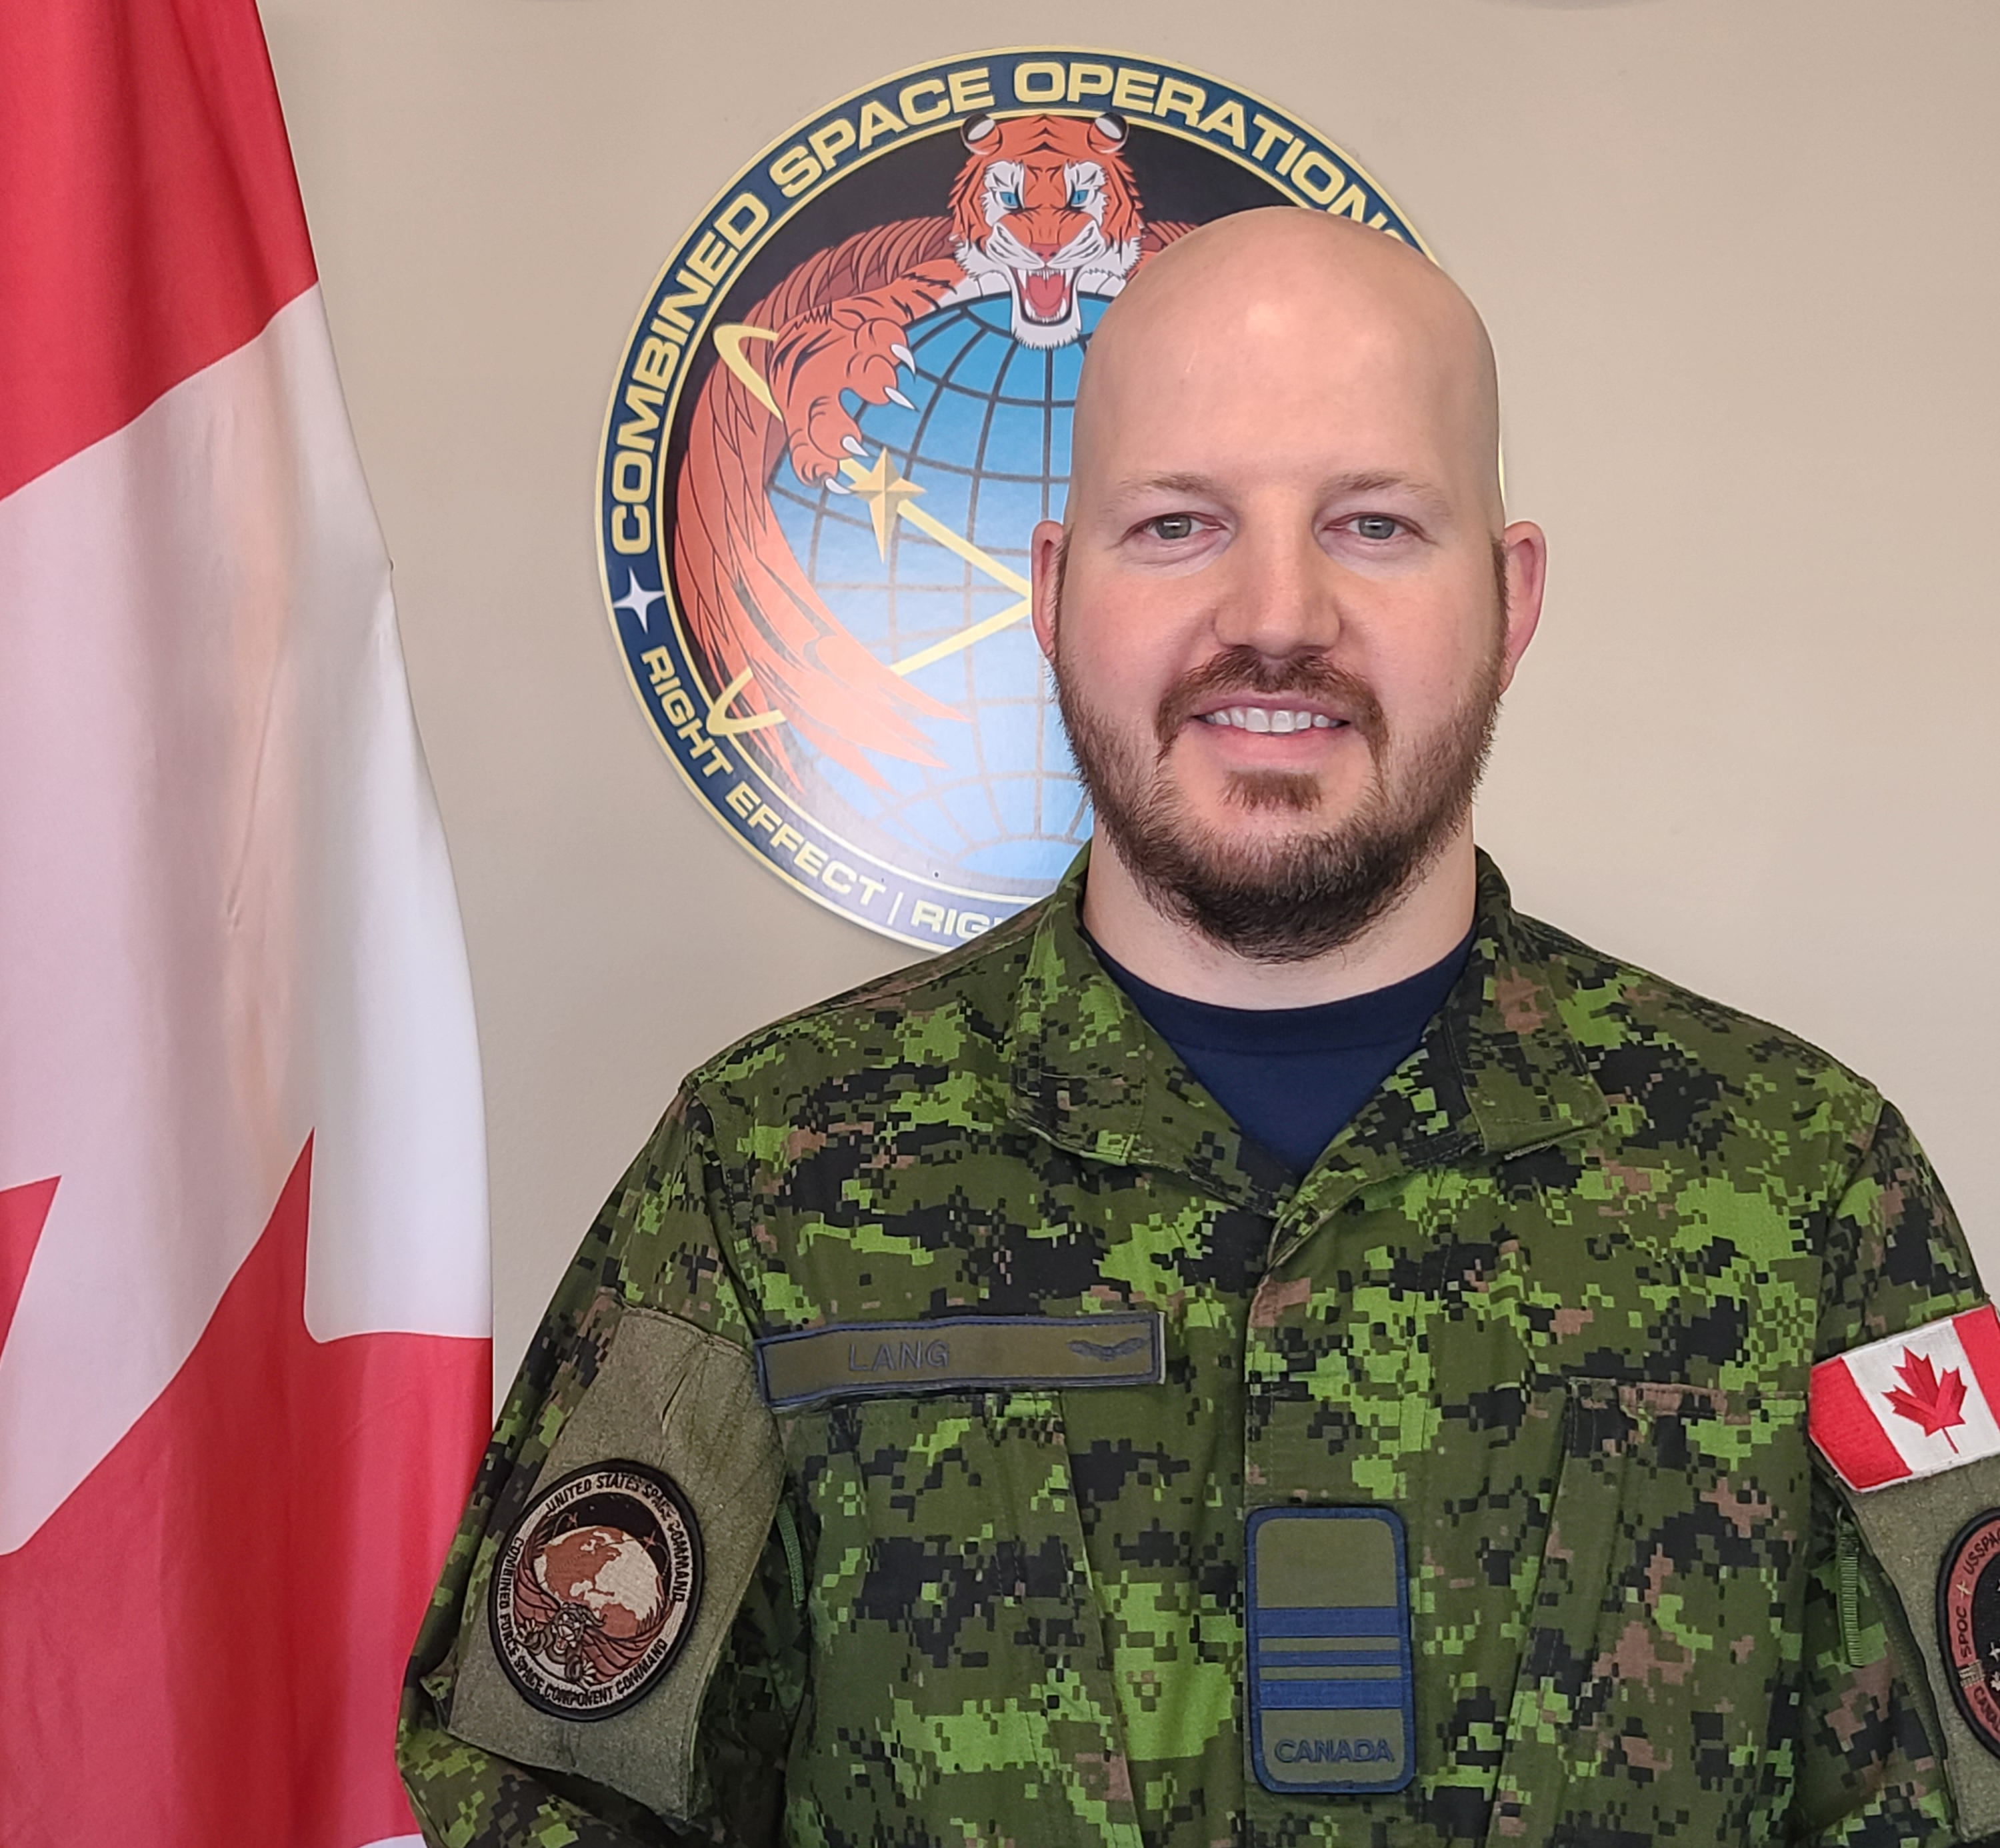 A man wearing a military camouflage uniform stands in front of a Canadian flag and military crests.